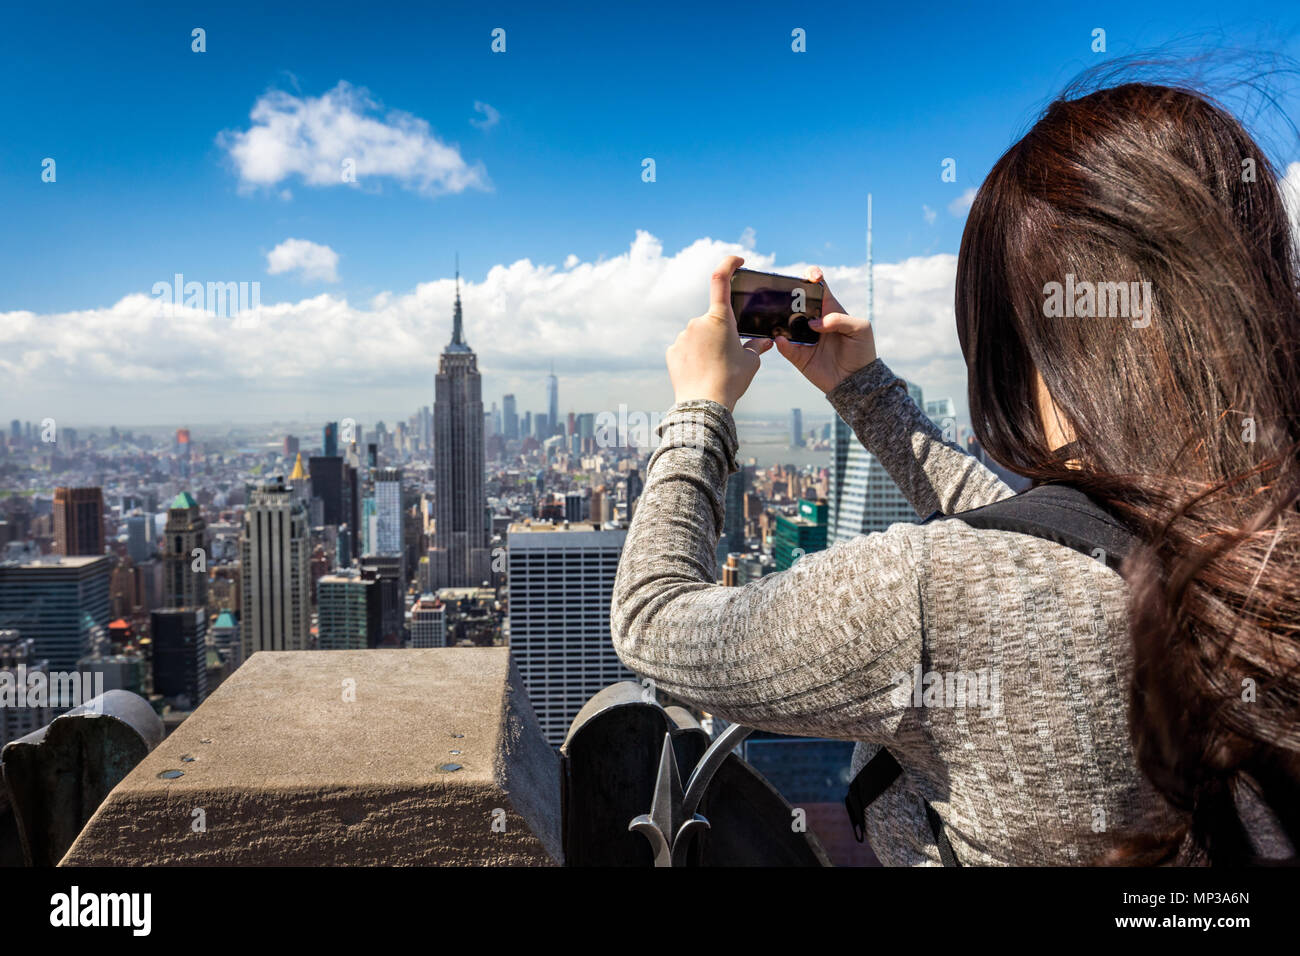 A tourist photographs the Empire State building from the Rockefeller Plaza observation deck in New York City, USA. - Stock Image